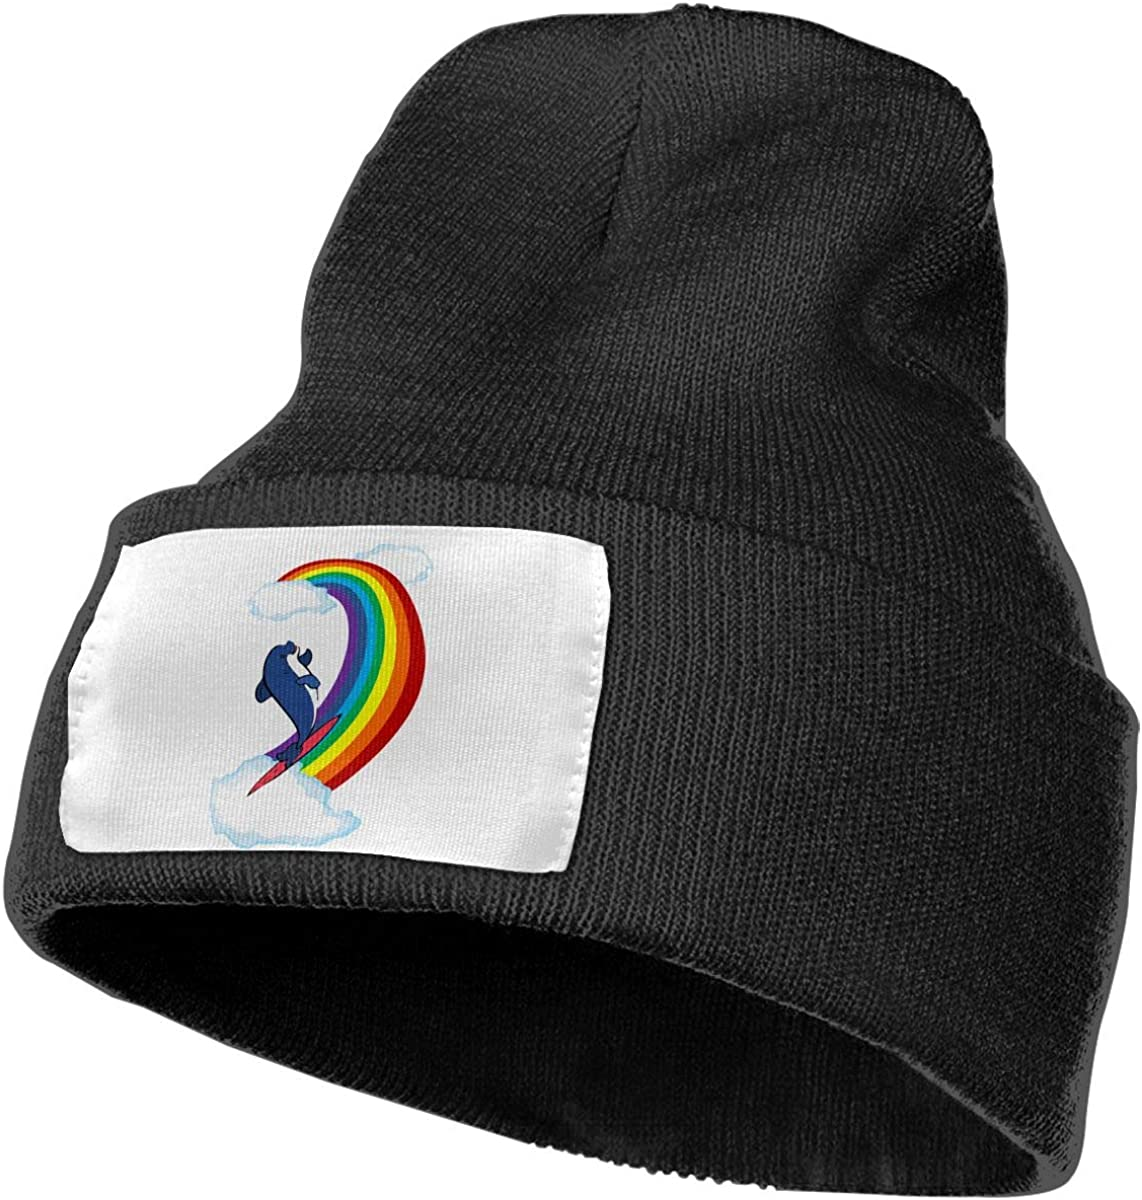 Surfing Dolphin On The Rainbow Men /& Women Skull Caps Winter Warm Stretchy Knitting Beanie Hats